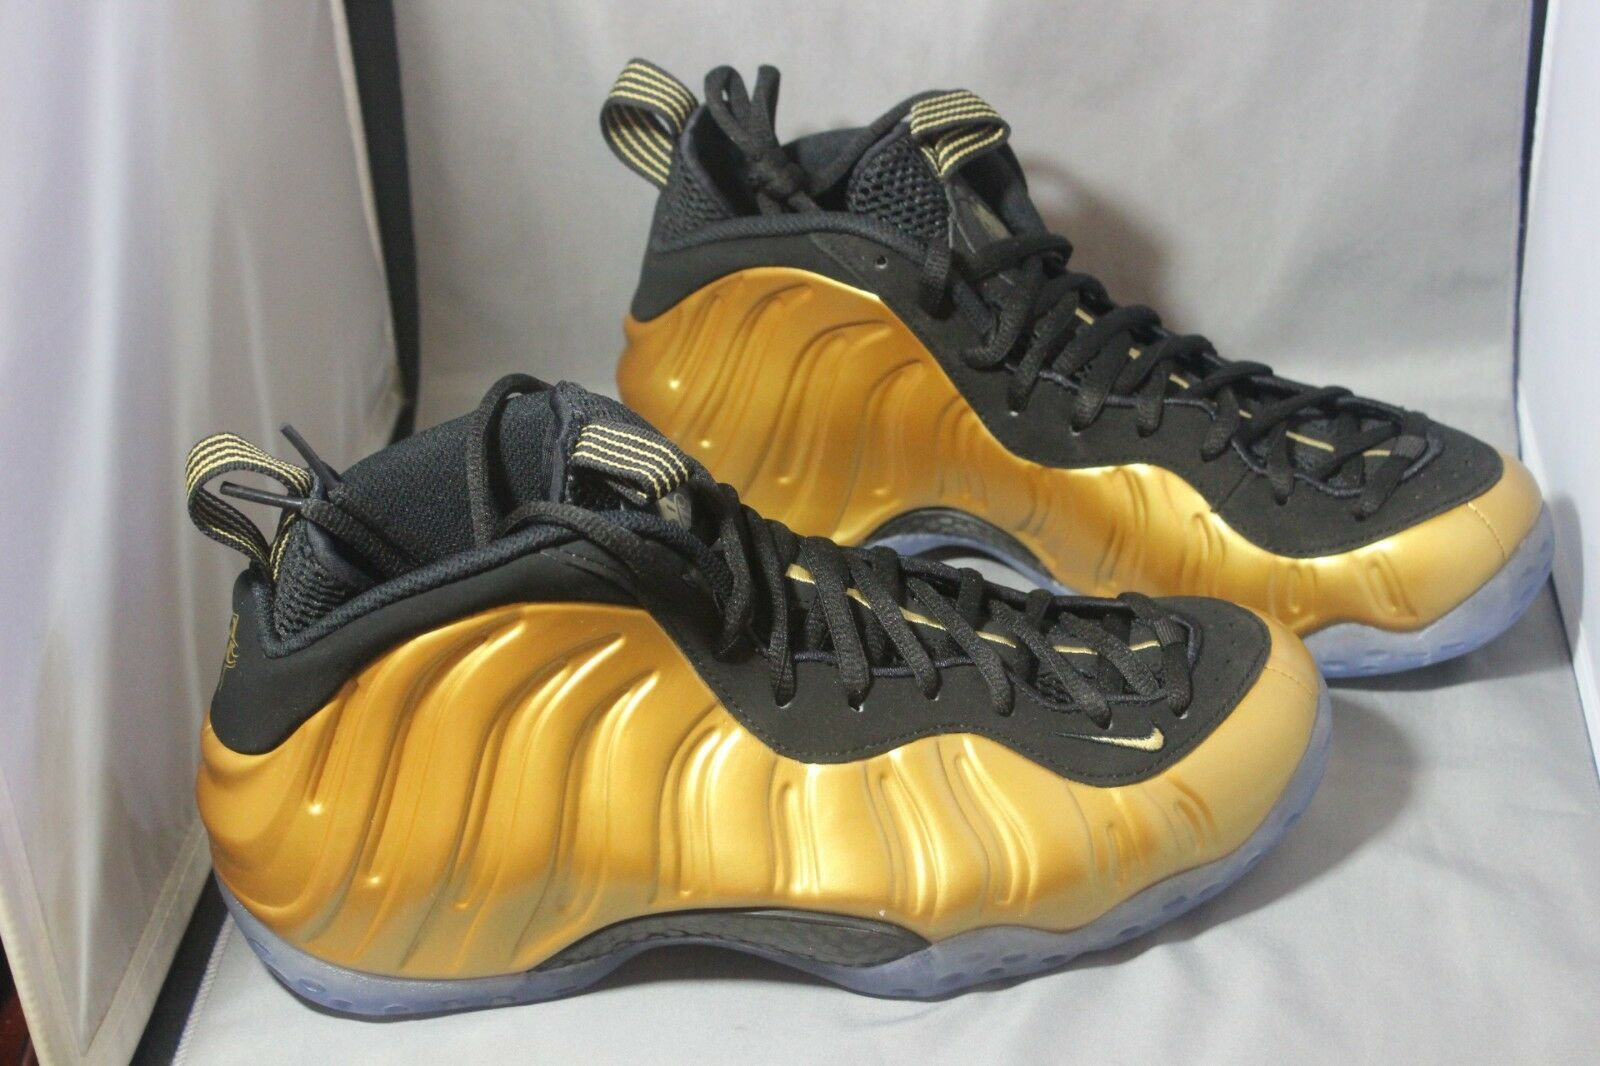 Nike Air Foamposite One 314996 700 Metallic gold Black Size 11